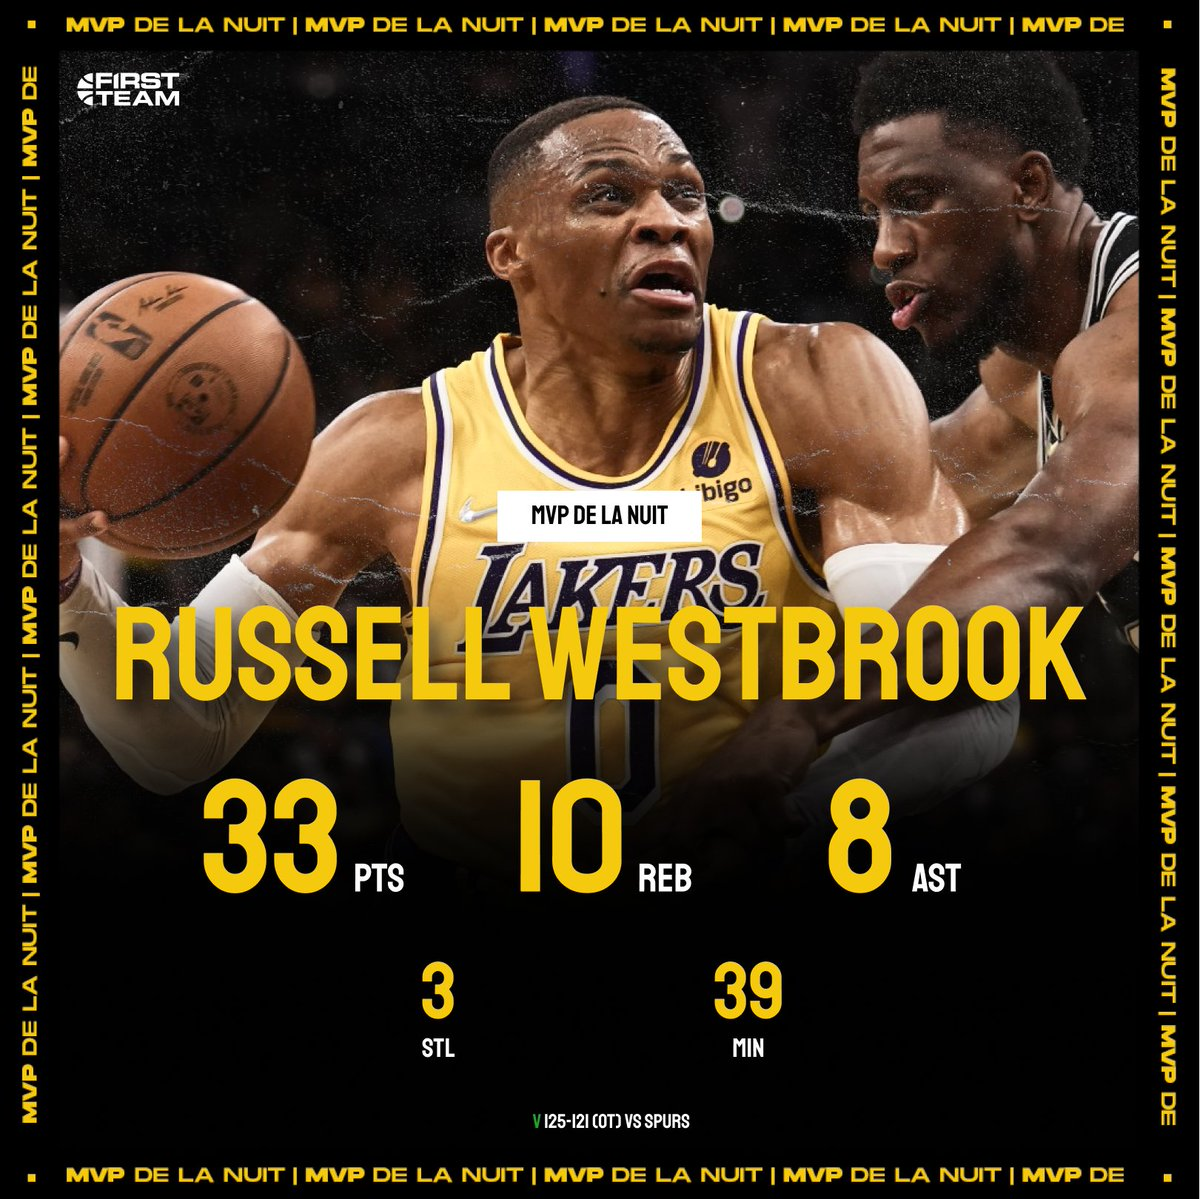 @FirstTeam101's photo on Westbrook